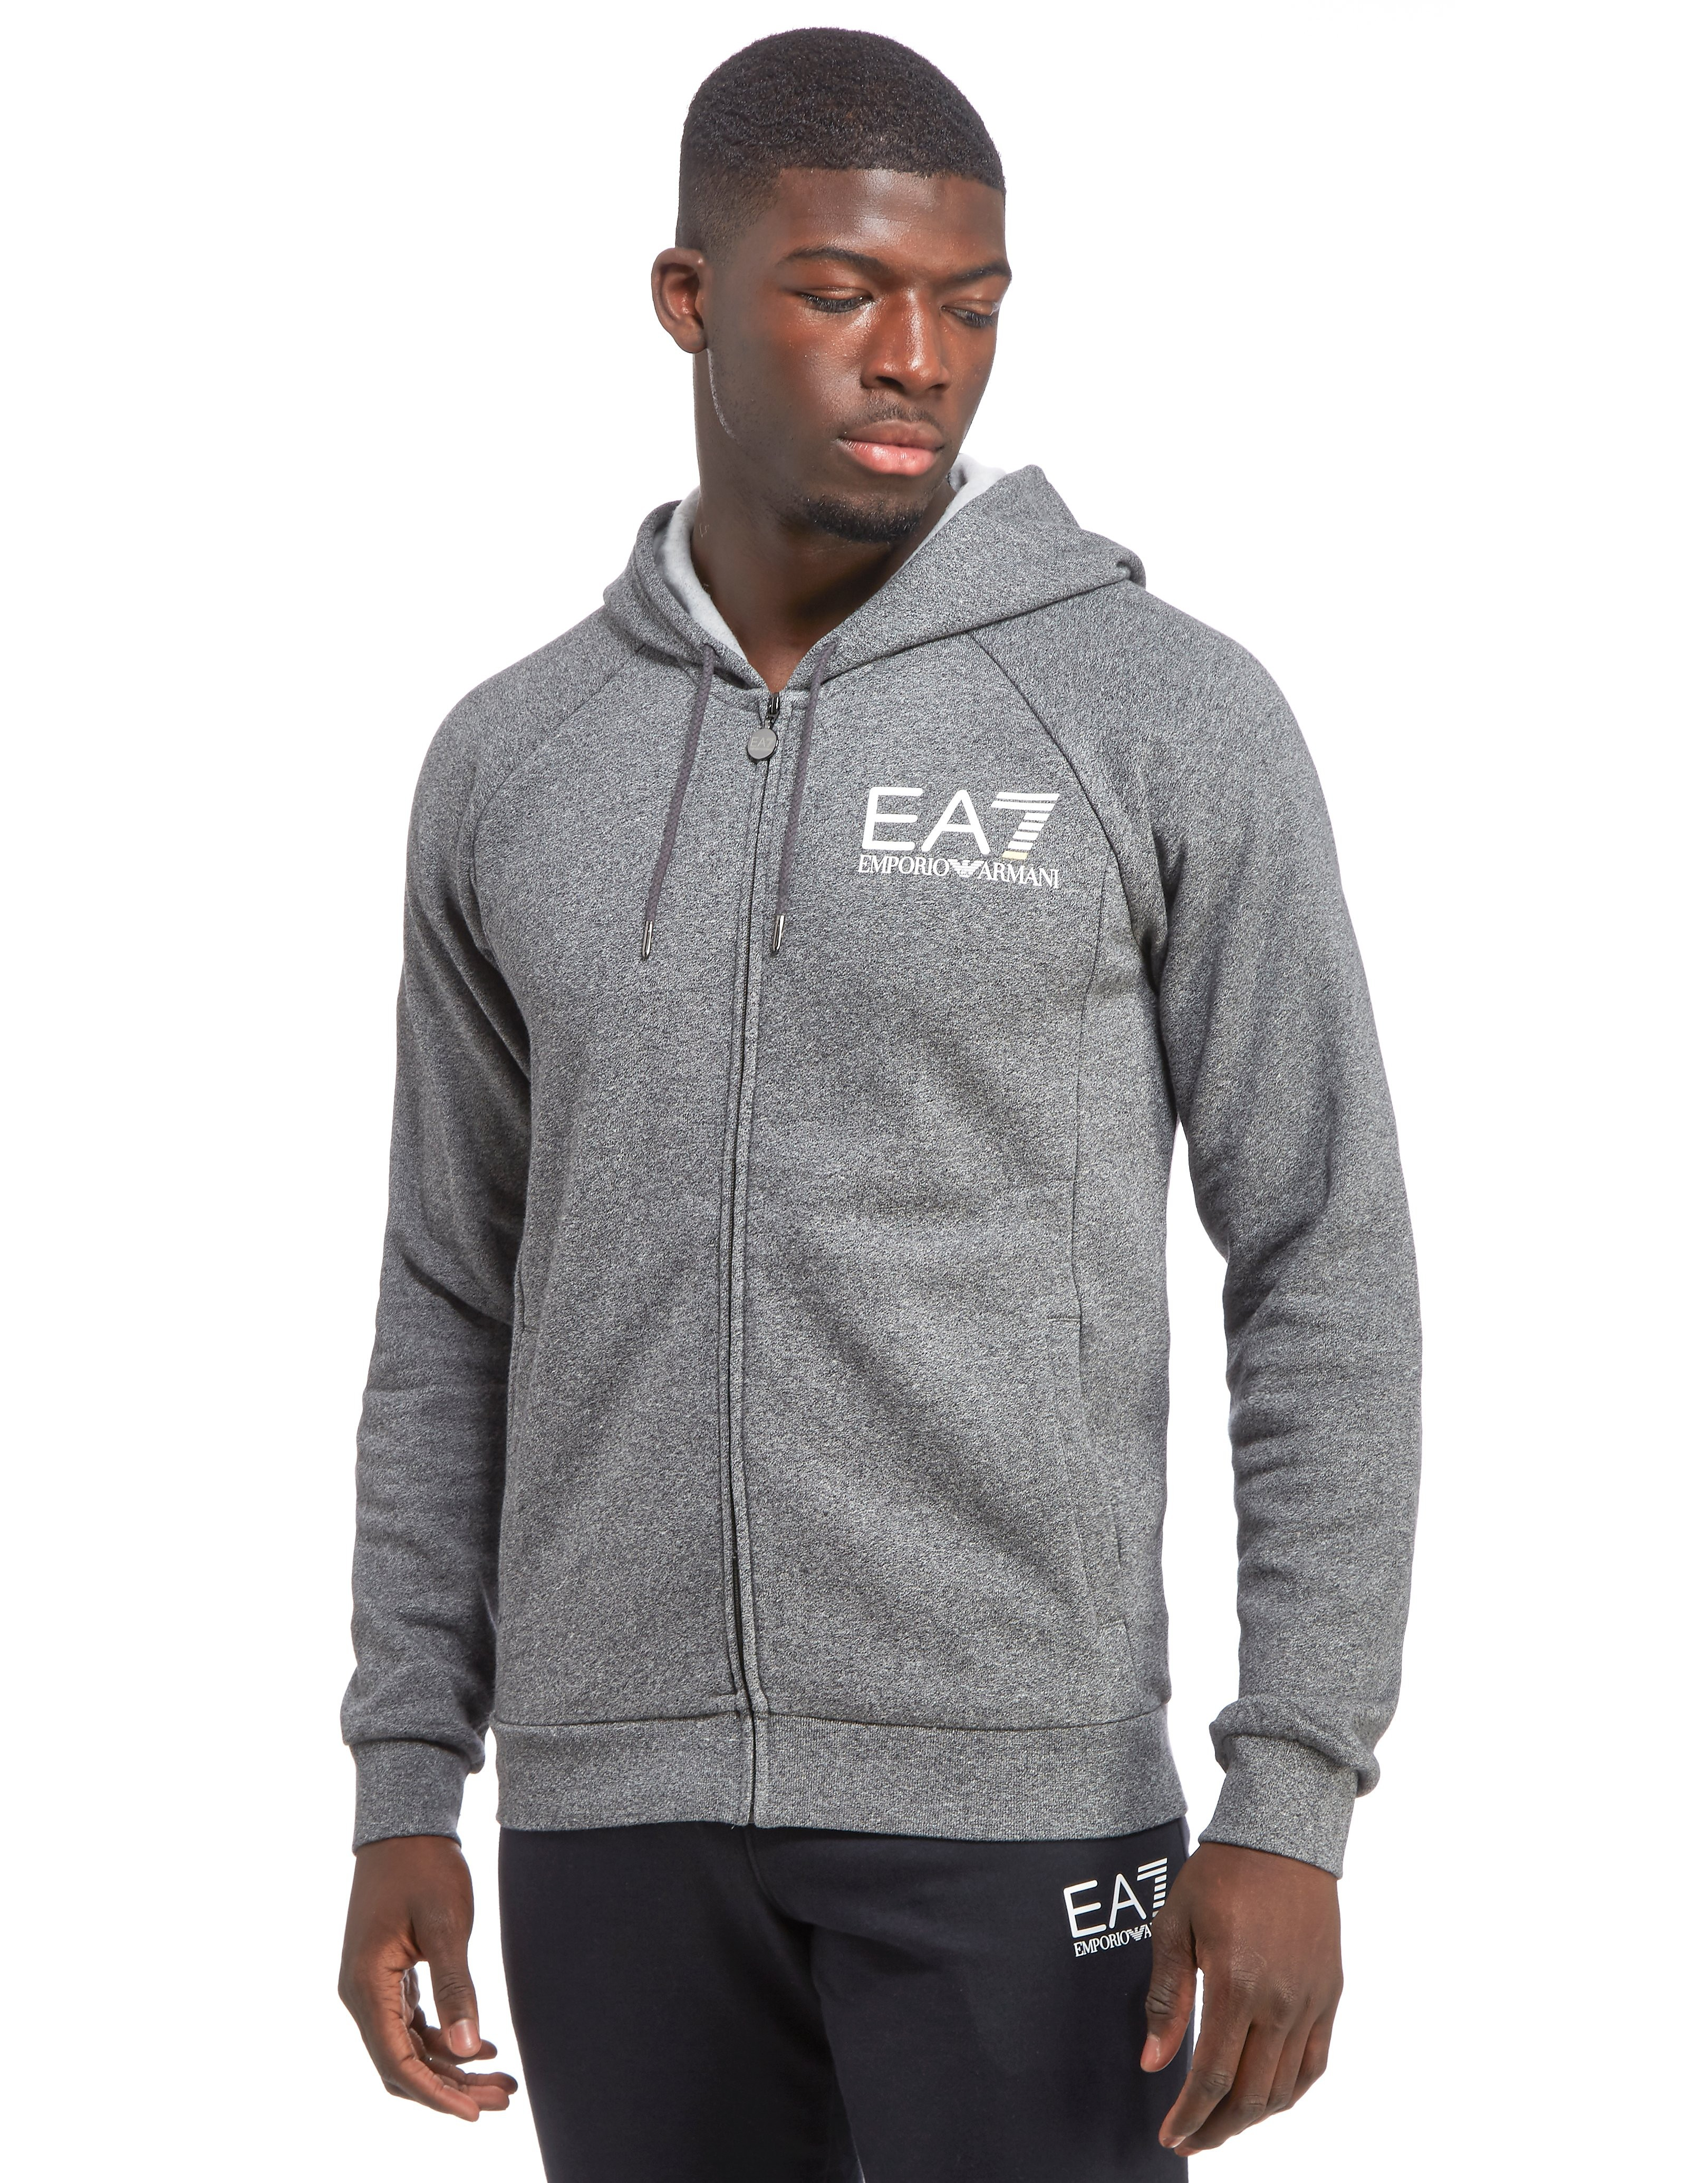 Emporio Armani EA7 Enhanced Hoody